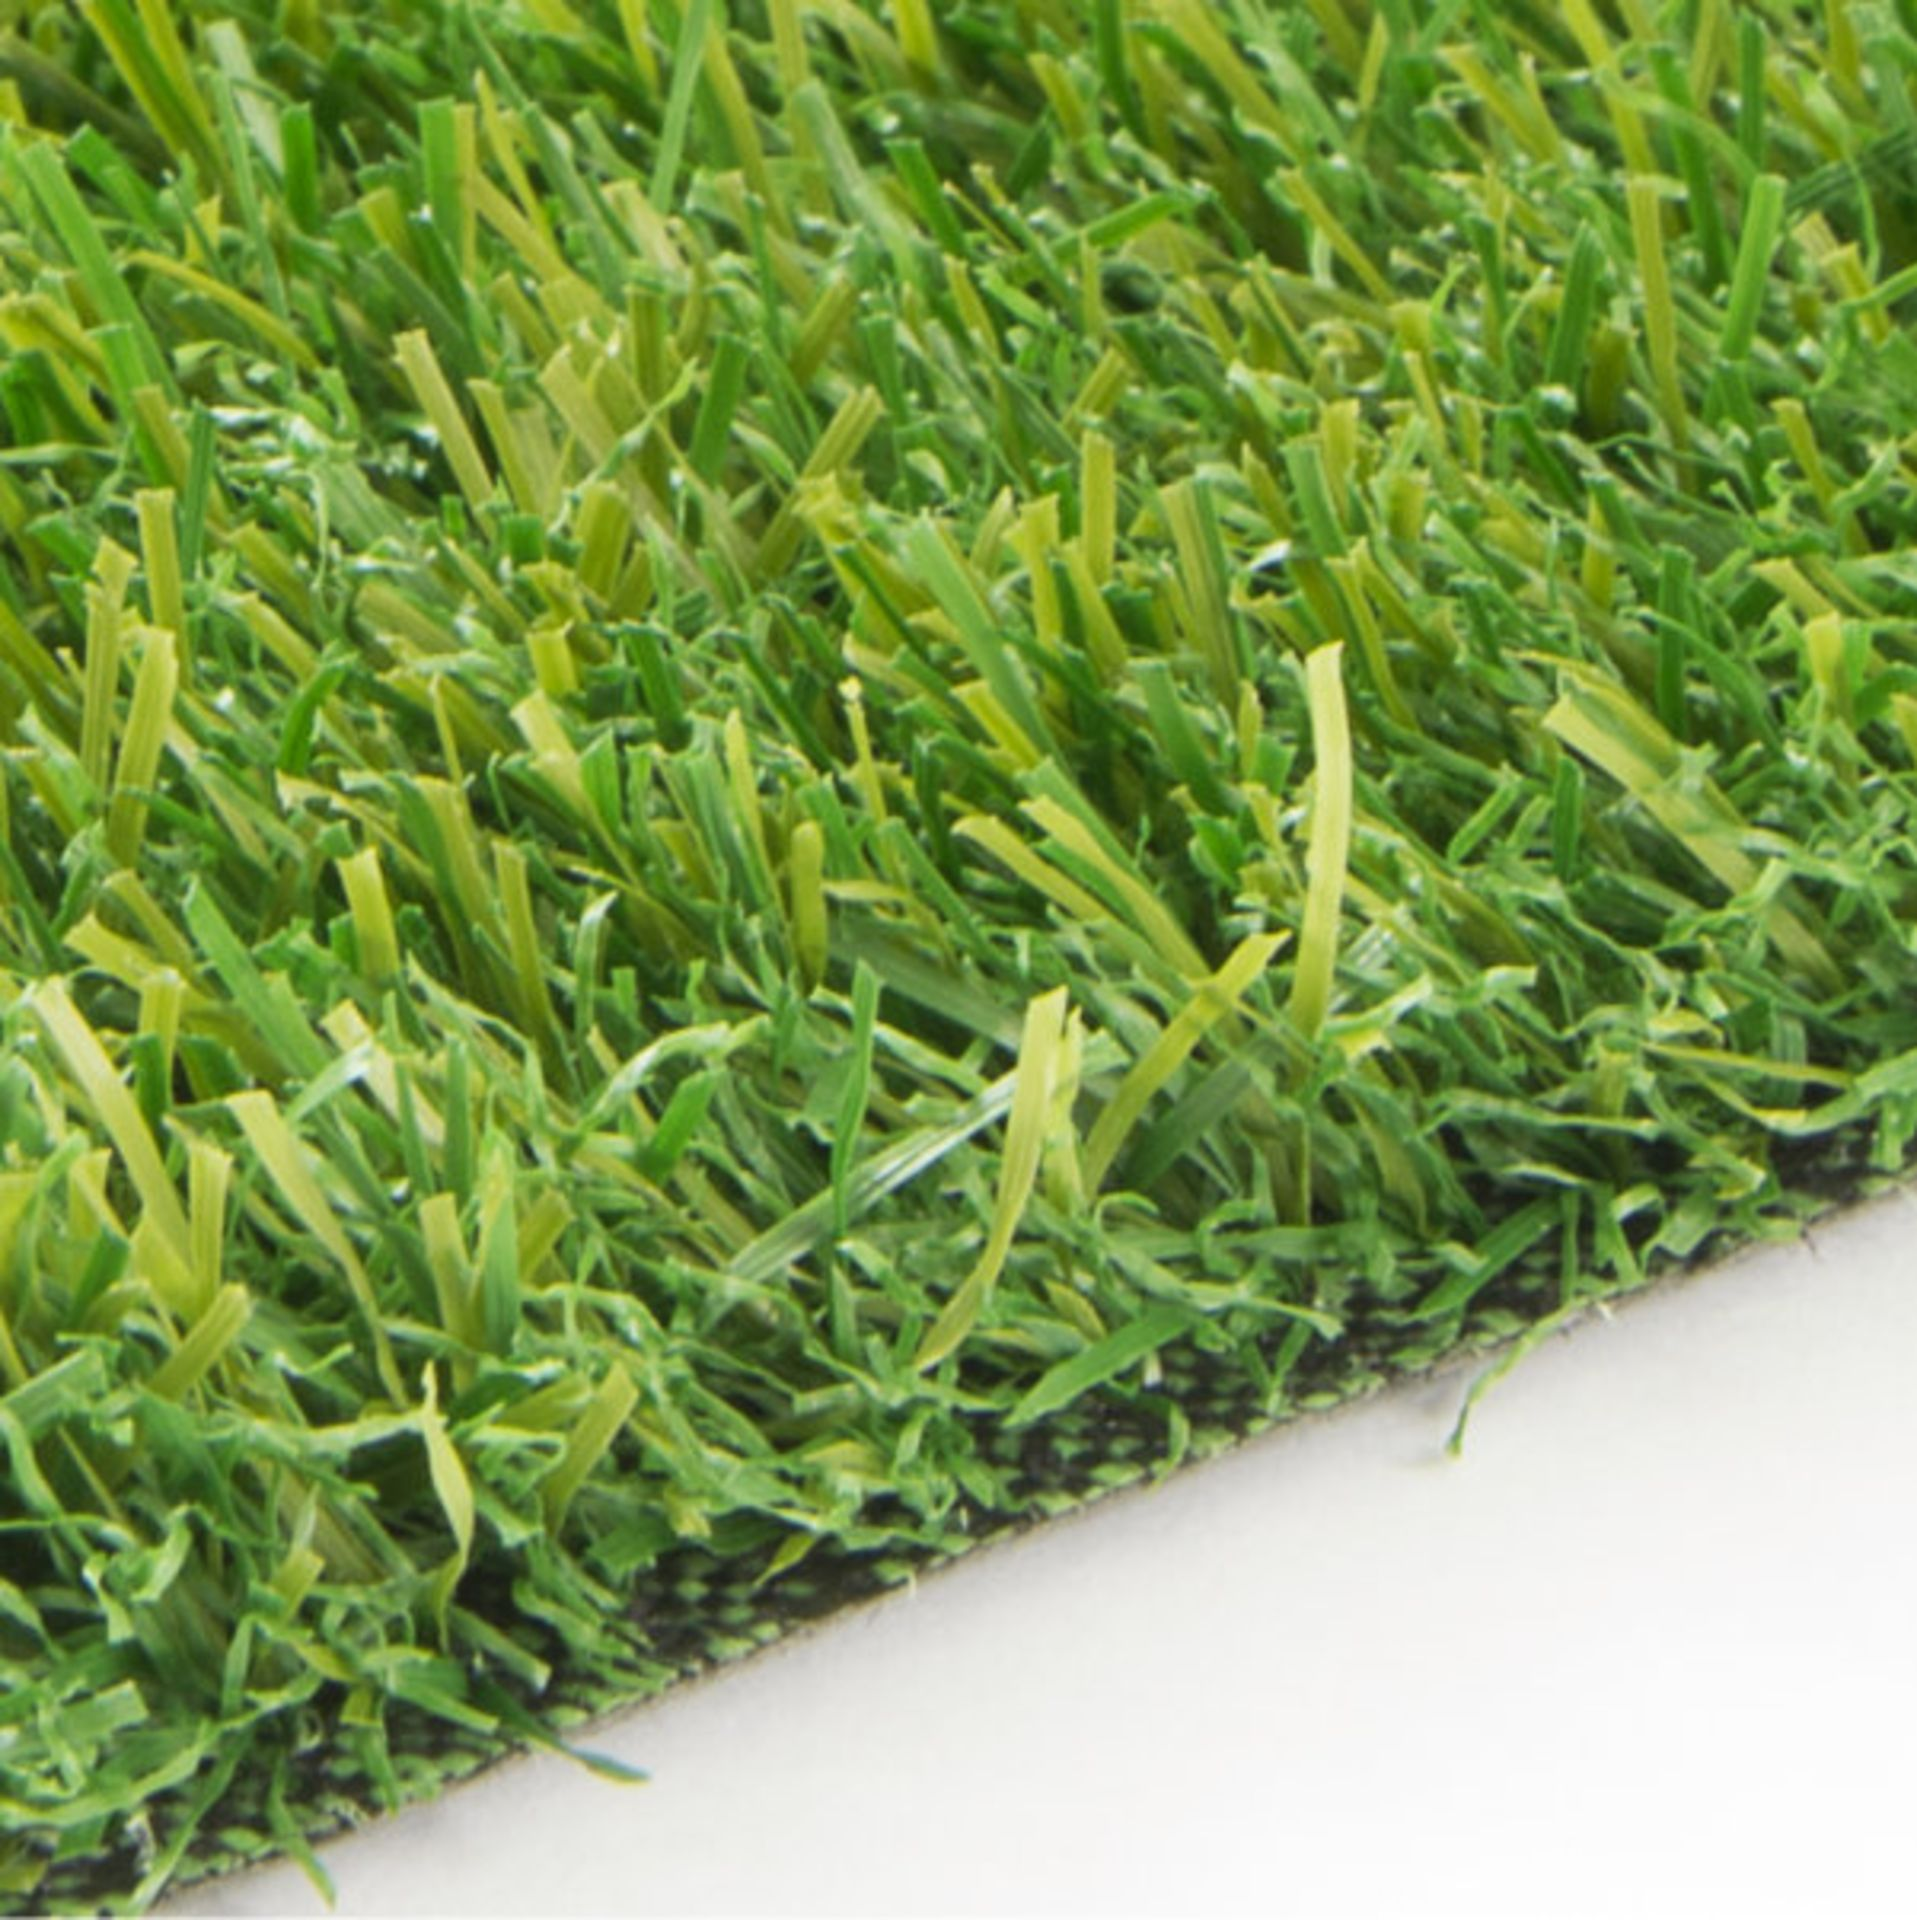 Lot 10 - A Full Roll of Perfect 20 Artificial Grass, 25 meters x 4 meters